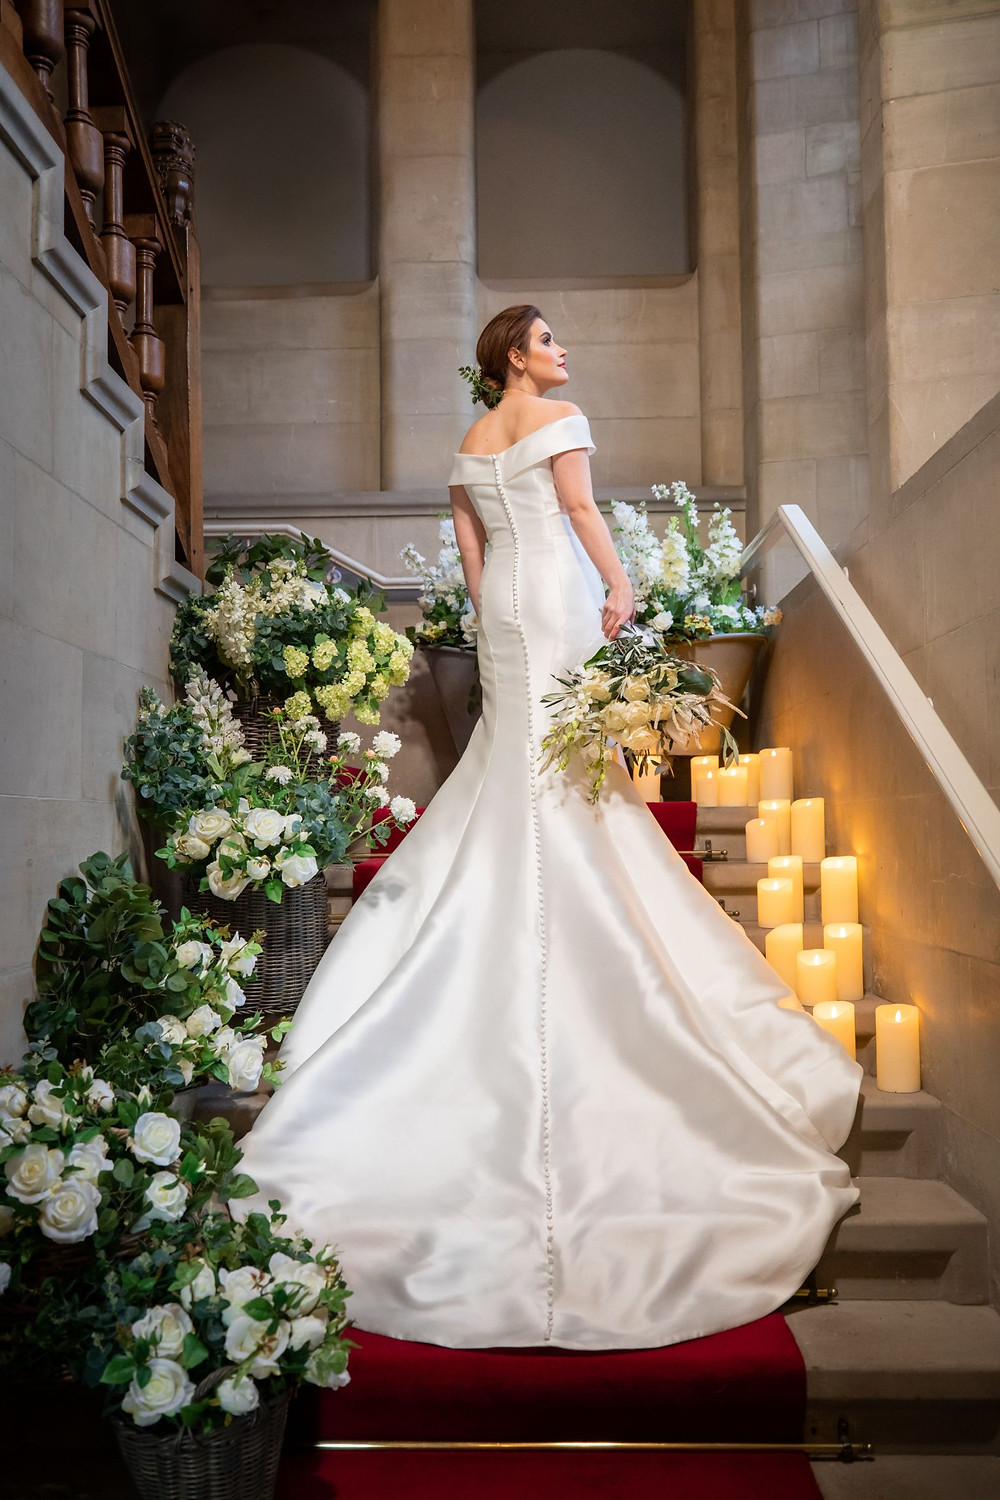 Jeff Oliver Photography   White Wedding, white and green wedding colours, bride ascending stairs with long train flowing down